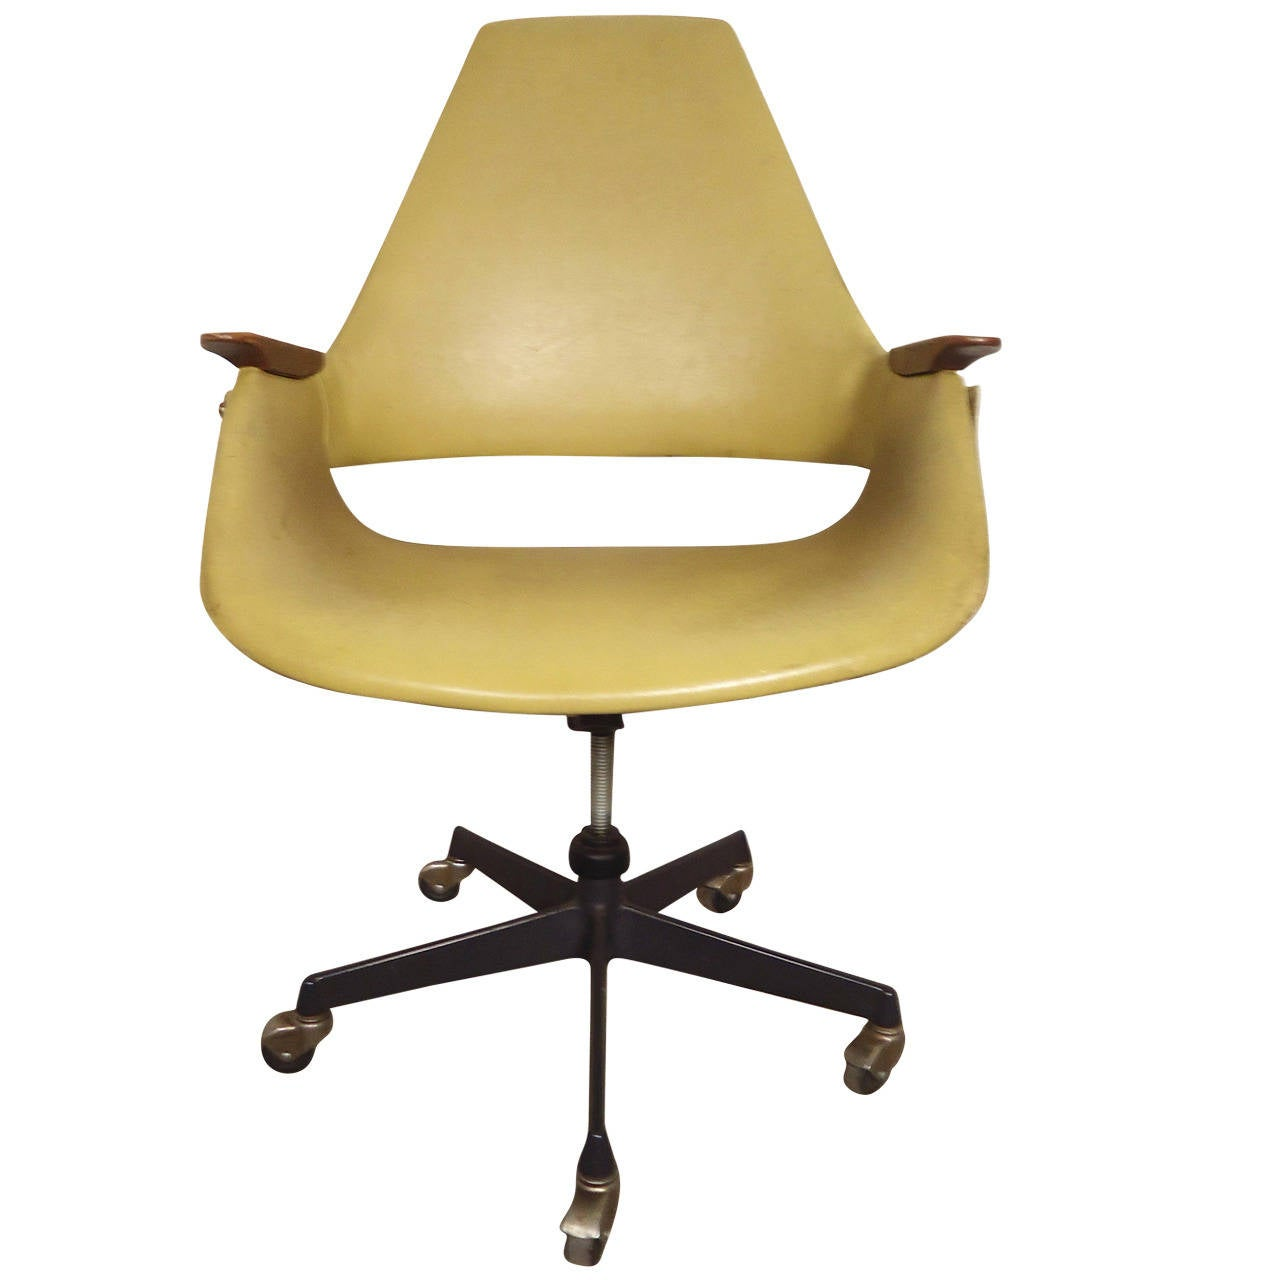 Roller Chairs Mid Century Modern Rolling Desk Chair At 1stdibs